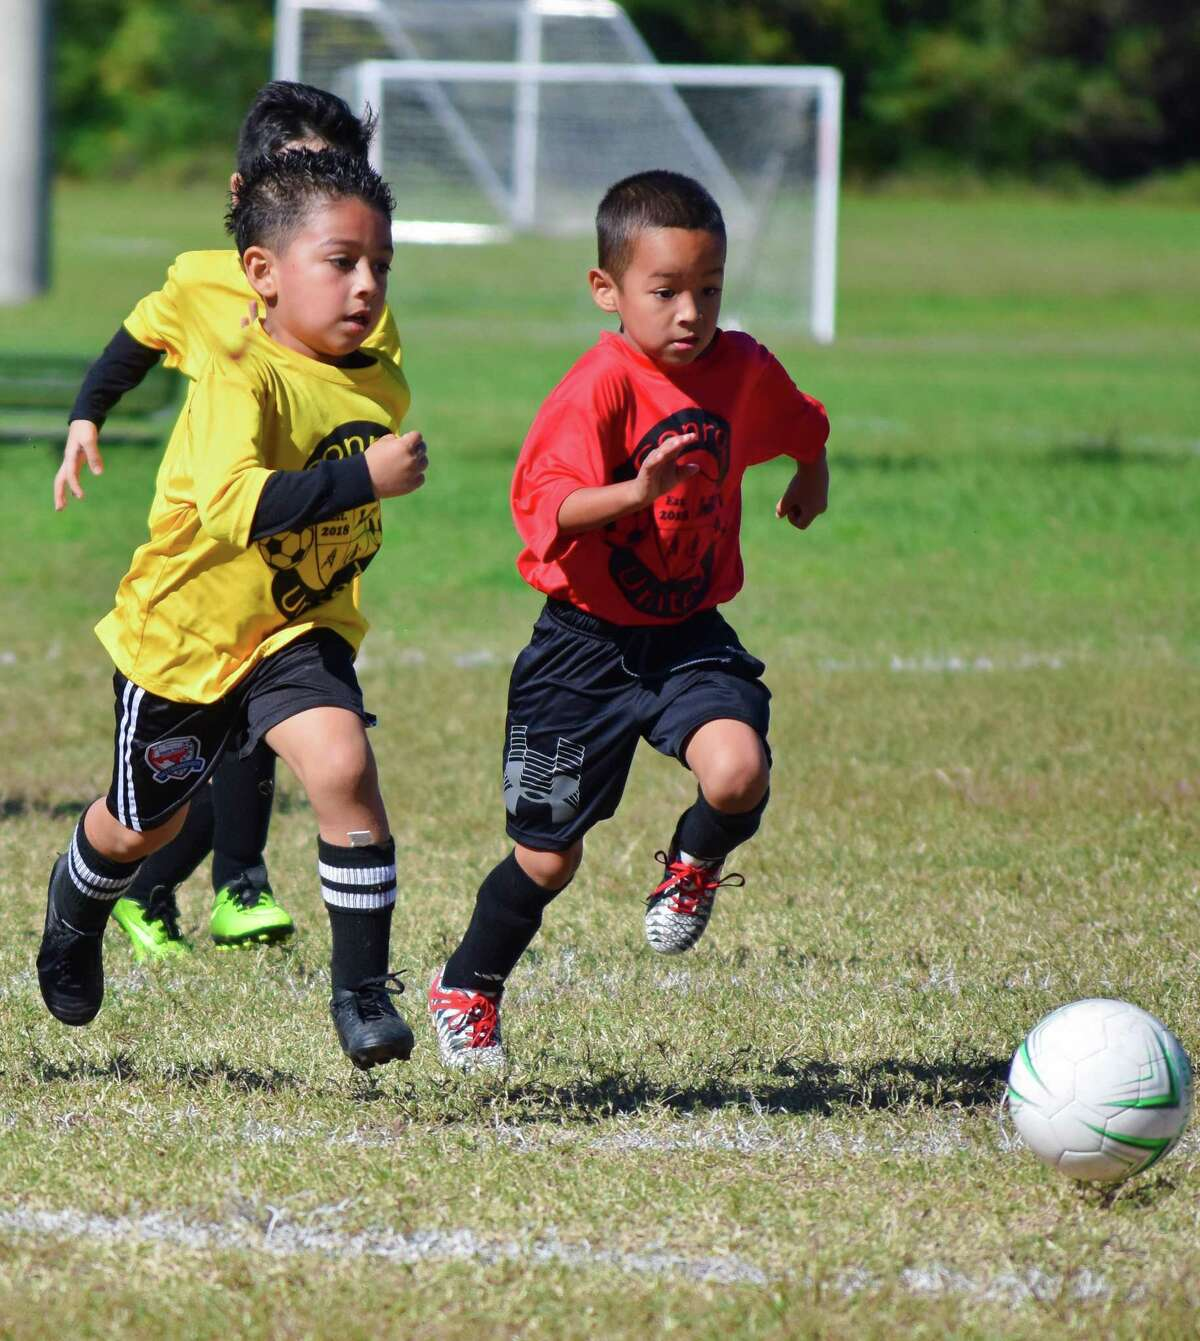 Registration for the Fall Conroe Youth Soccer League for youth ages 4-13 is available through Aug. 14. All games will be played at Carl Barton, Jr. Park. Register at C.K. Ray Recreation Center, Oscar Johnson, Jr. Community Center or online at http://bit.do/ConroeU2020. Safety is always the priority and all measures will be followed as ordered by the governor and the state of Texas.